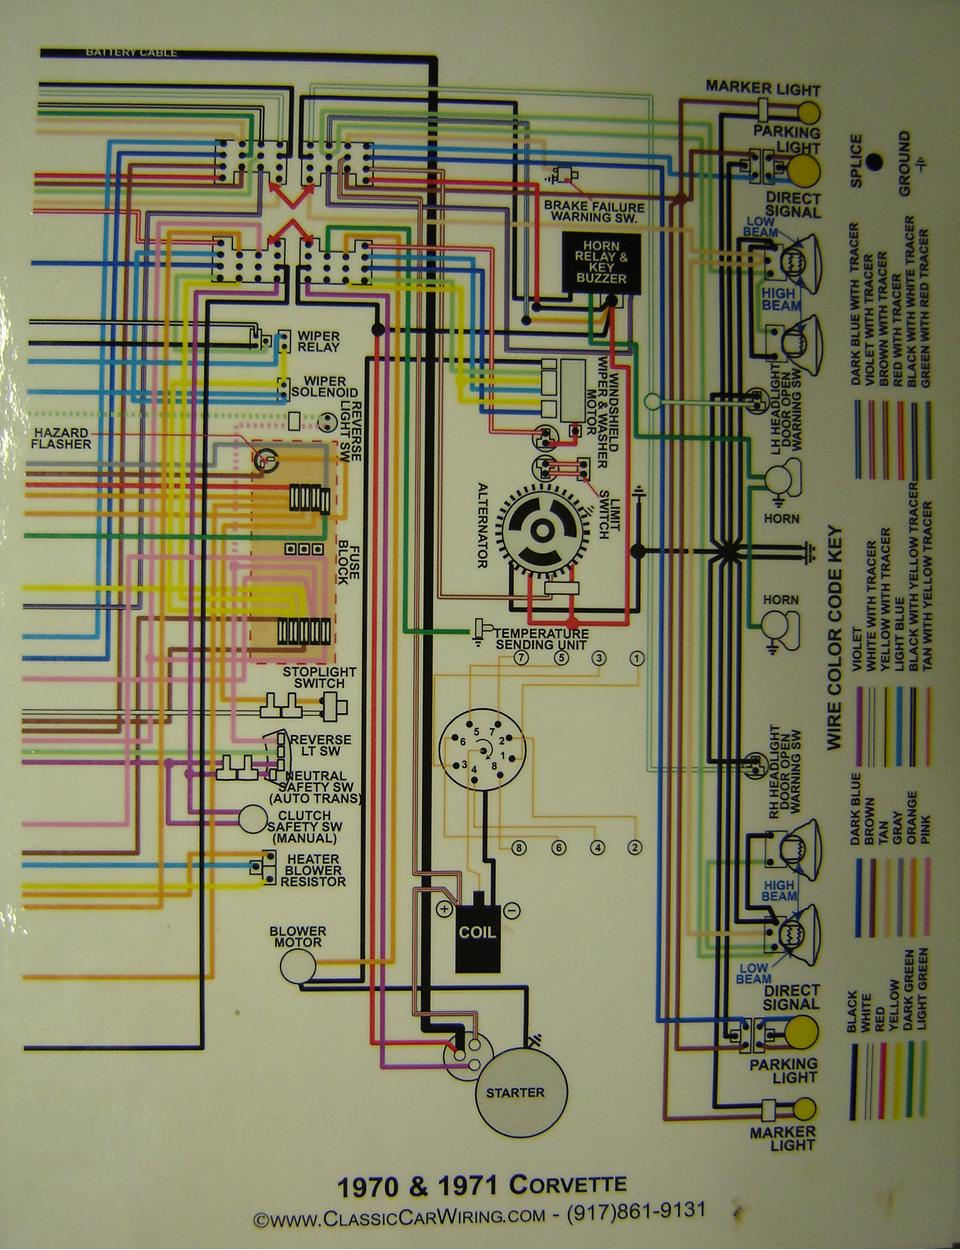 1996 chevy 1500 wiring diagram pdf car fuse box wiring diagram chevy diagrams rh wiring wizard com 1993 chevy 1500 wiring diagram 1990 chevy 1500 wiring diagram publicscrutiny Images